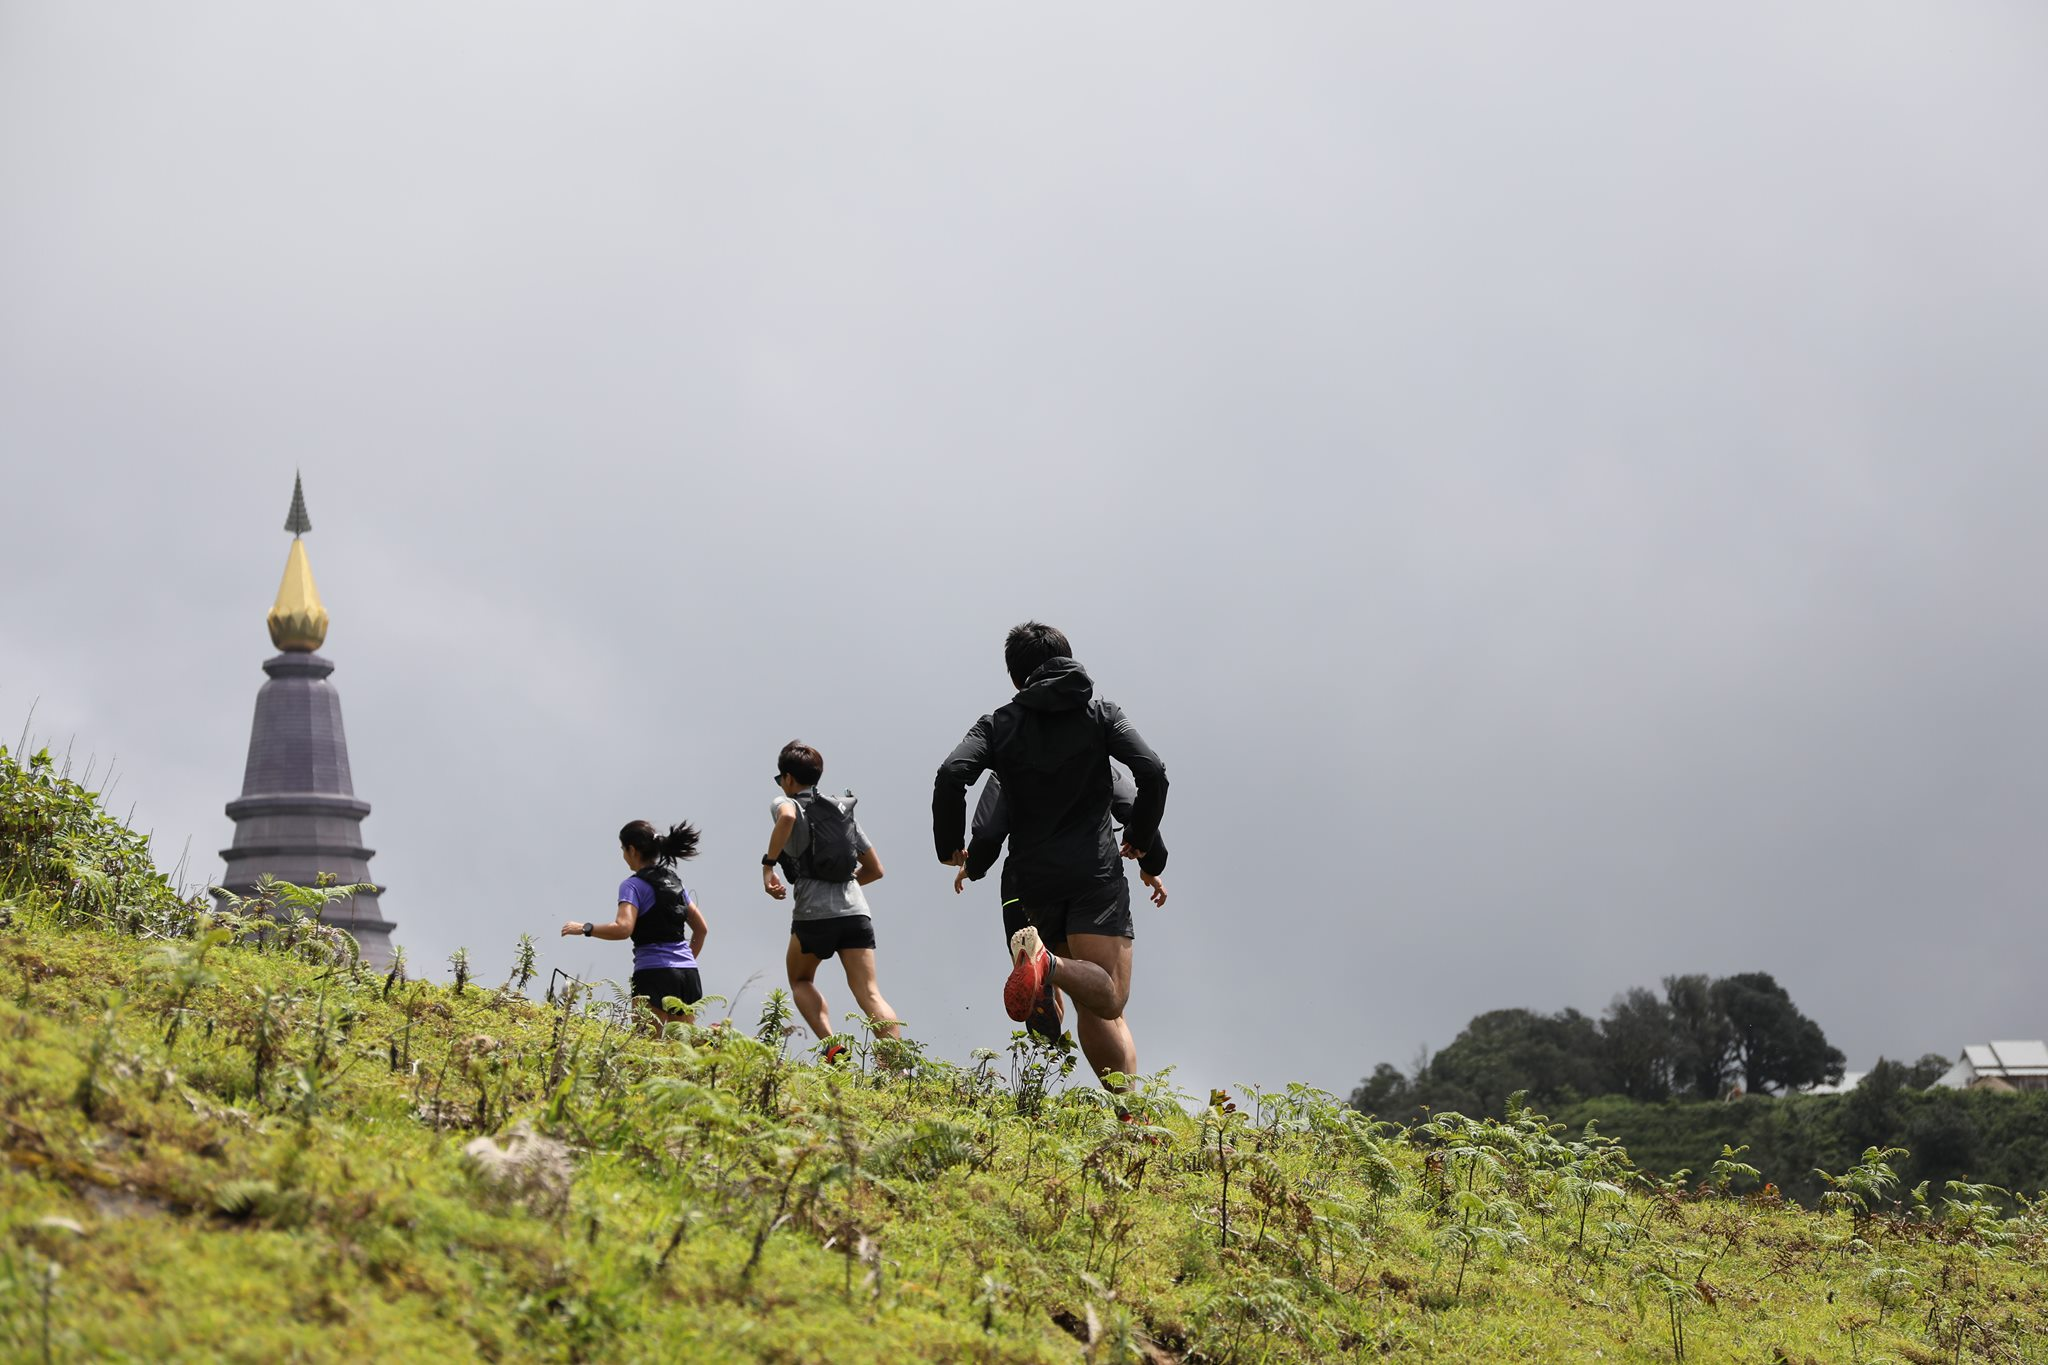 Thailand by UTMB - Day 1 (Video)